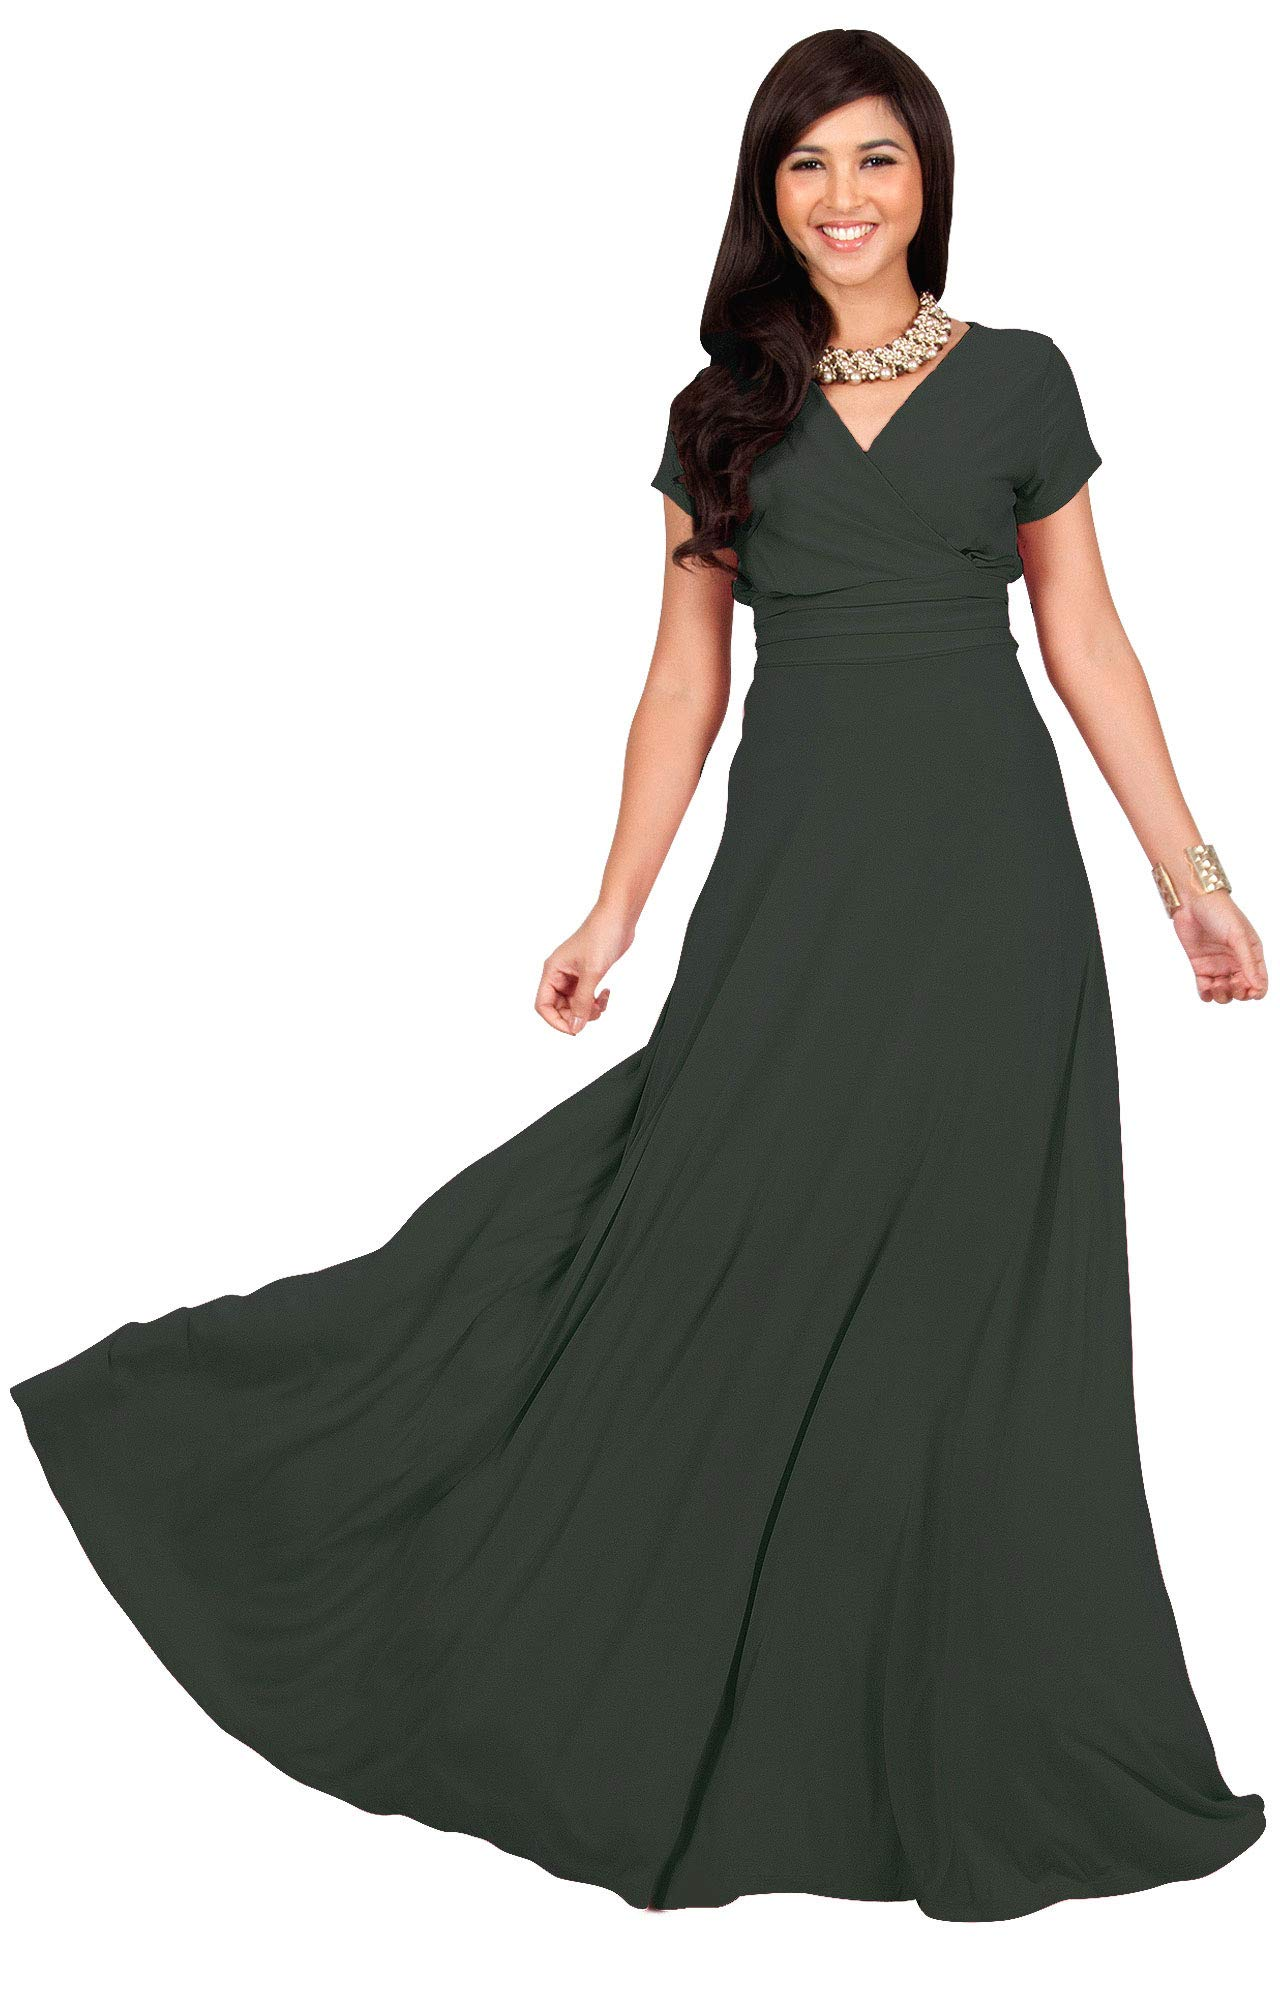 c2dbb799f7fd KOH KOH Plus Size Womens Long Cap Short Sleeve V-neck Flowy Cocktail  Slimming Summer Sexy Casual Formal Sun Sundress Work Cute Gown Gowns Maxi  Dress Dresses ...